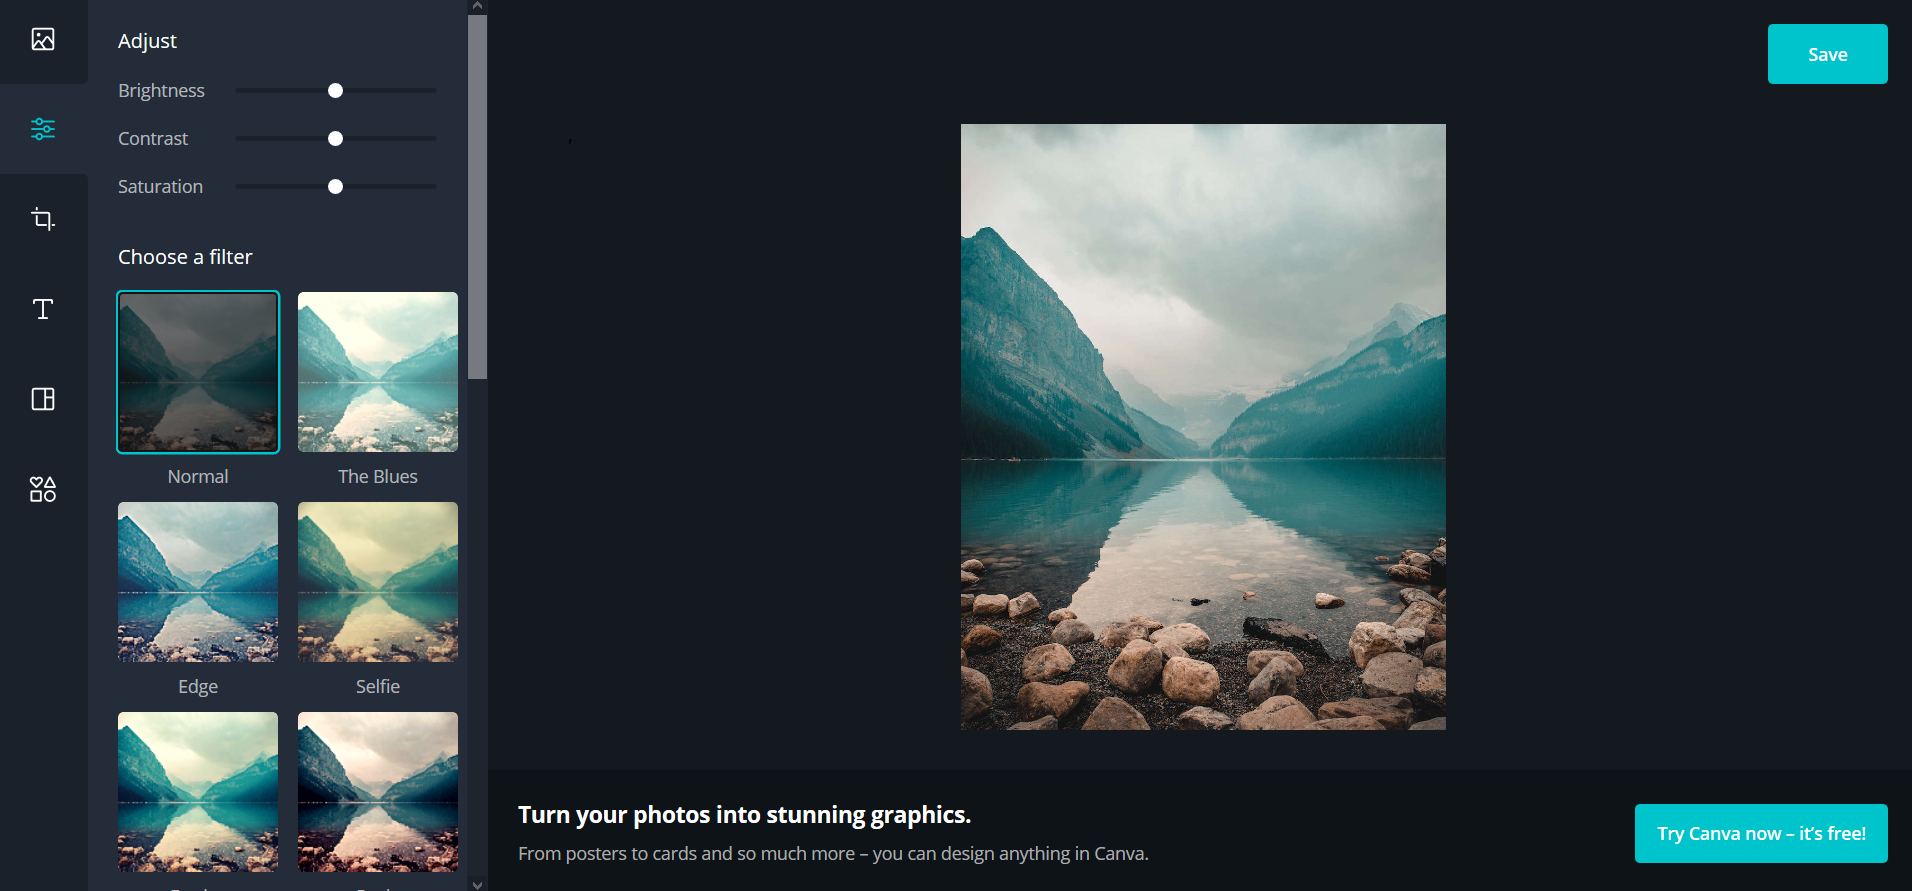 Free online photo editing tool Canva